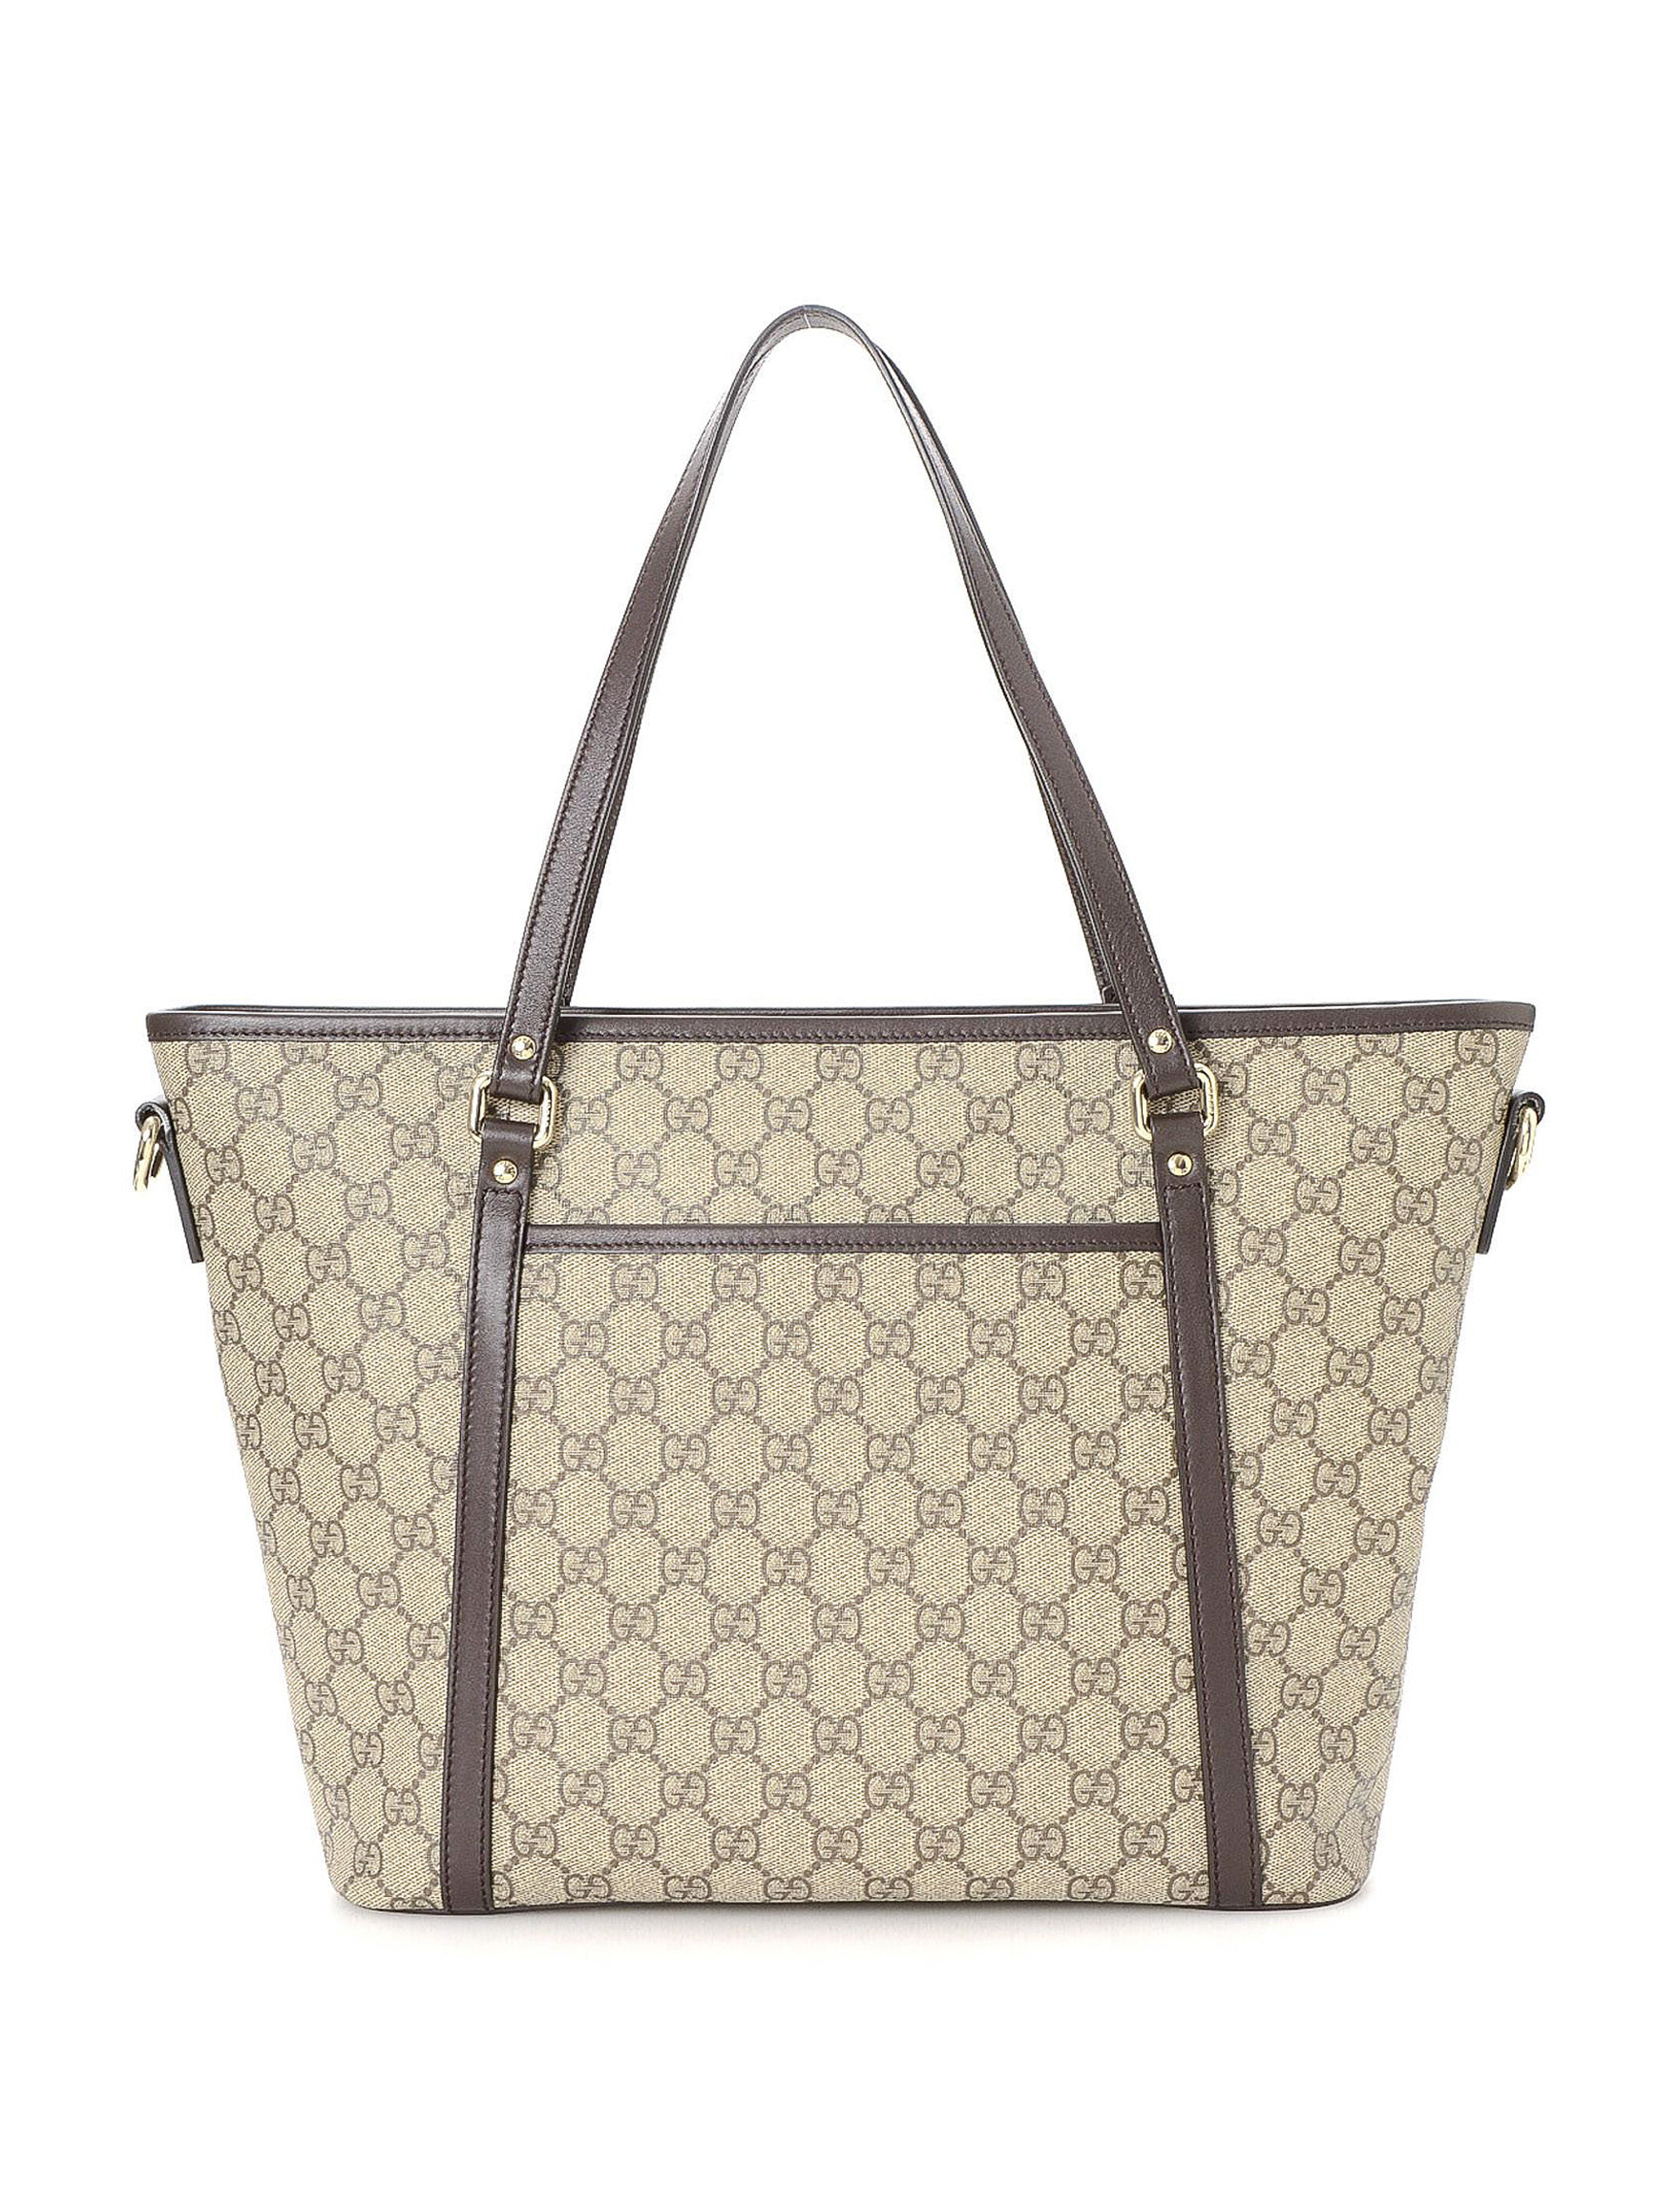 82b1256505ae Luxury Pre-Owned Gucci FF Supreme Two Way Tote - FINAL SALE   Stage ...